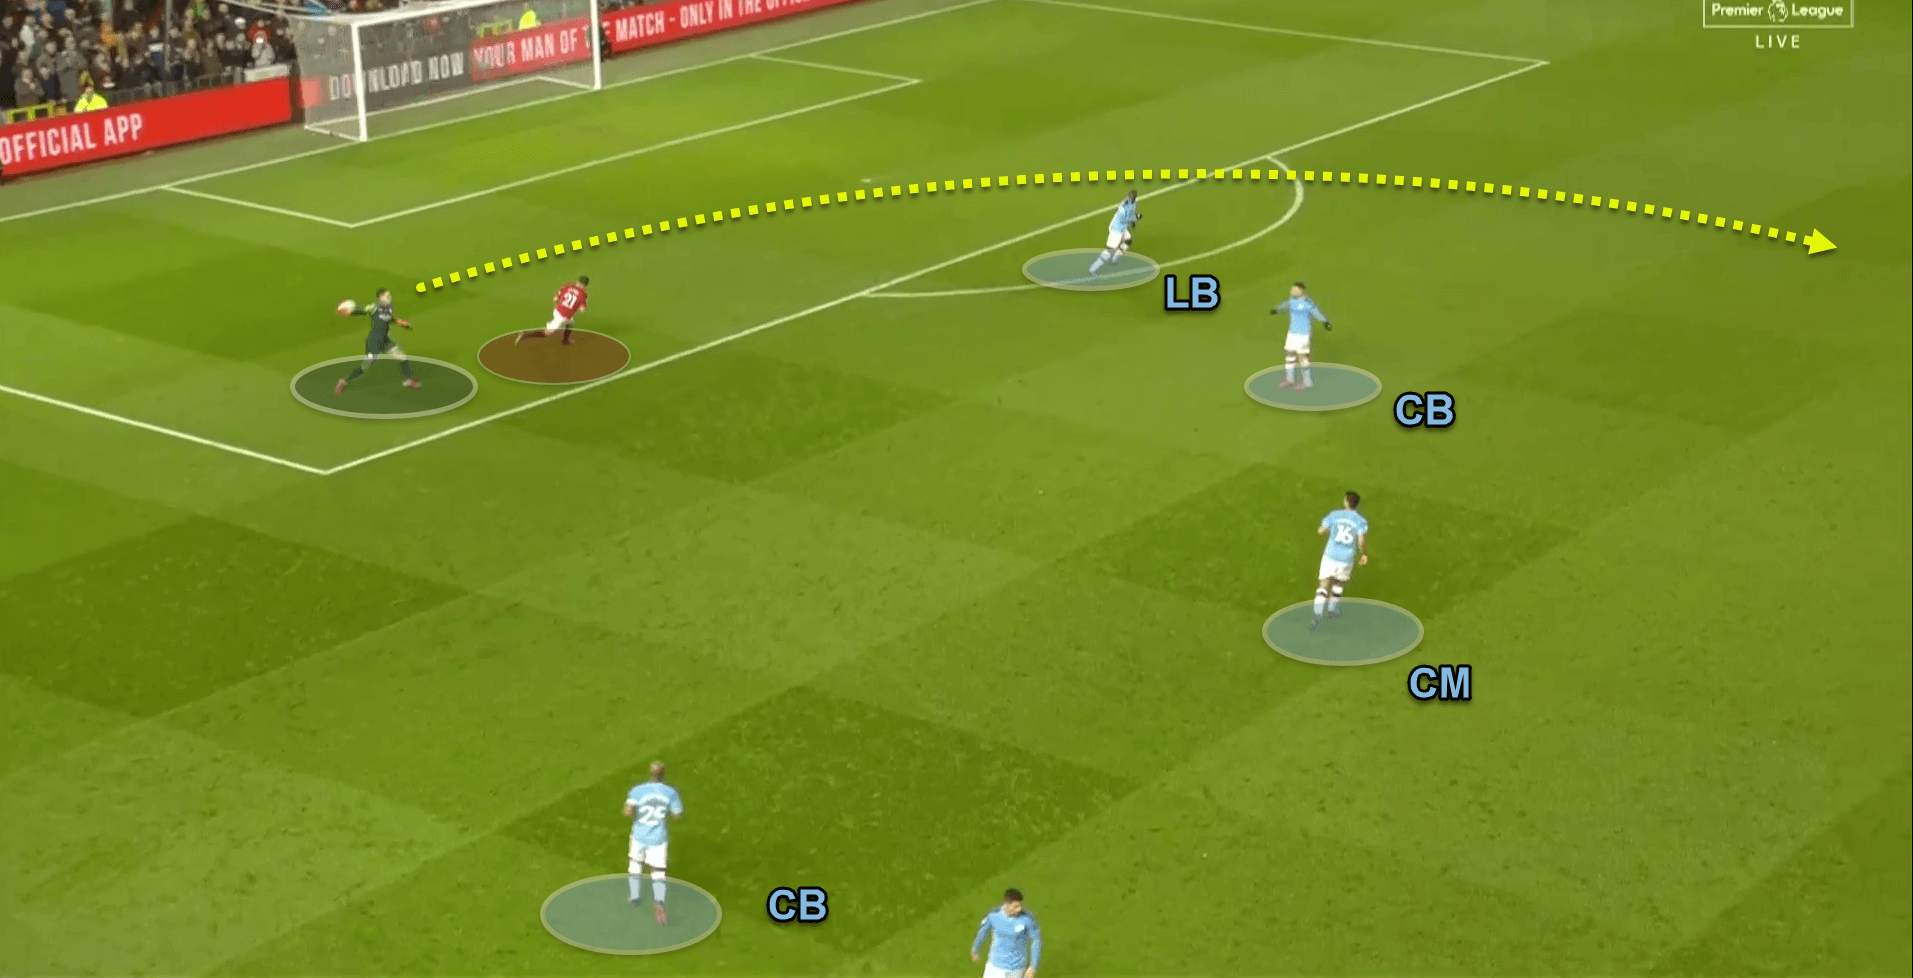 Premier League 2019/20: Manchester United v Manchester City - tactical analysis tactics